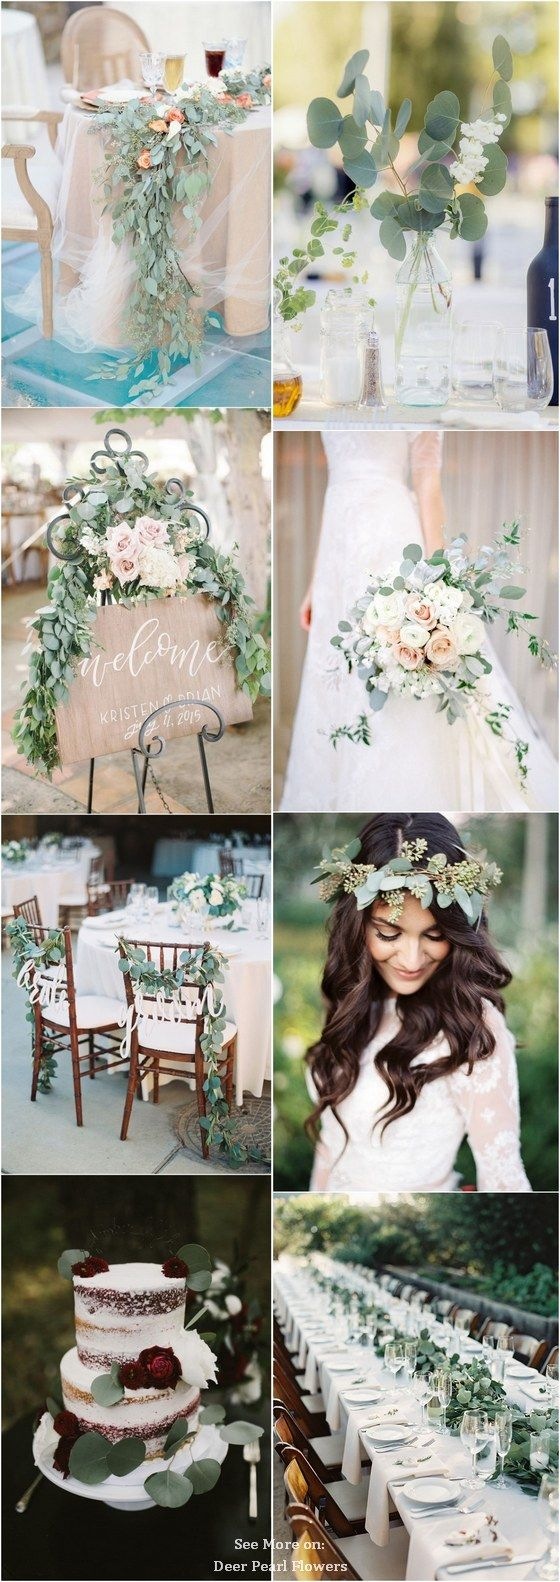 Best 25 pond wedding ideas on pinterest outdoor for Pond decorations